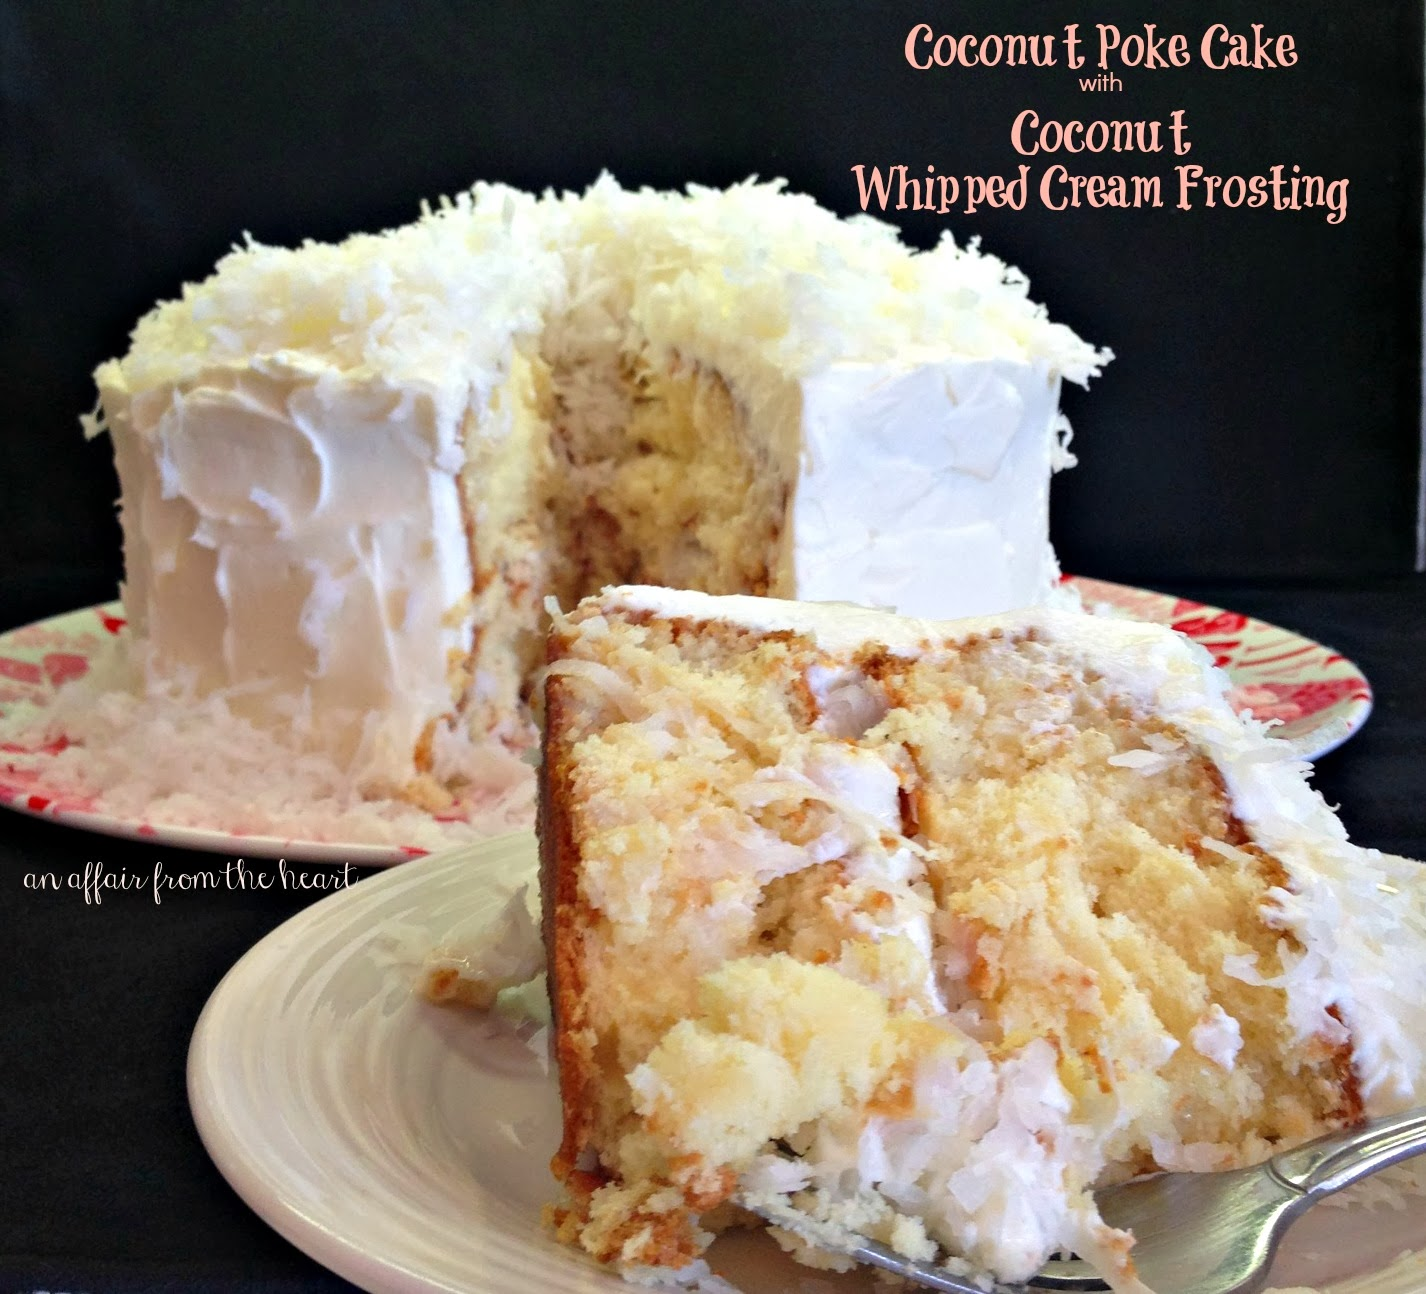 ... the heart: Coconut Cream Poke Cake with Coconut Whipped Cream Frosting